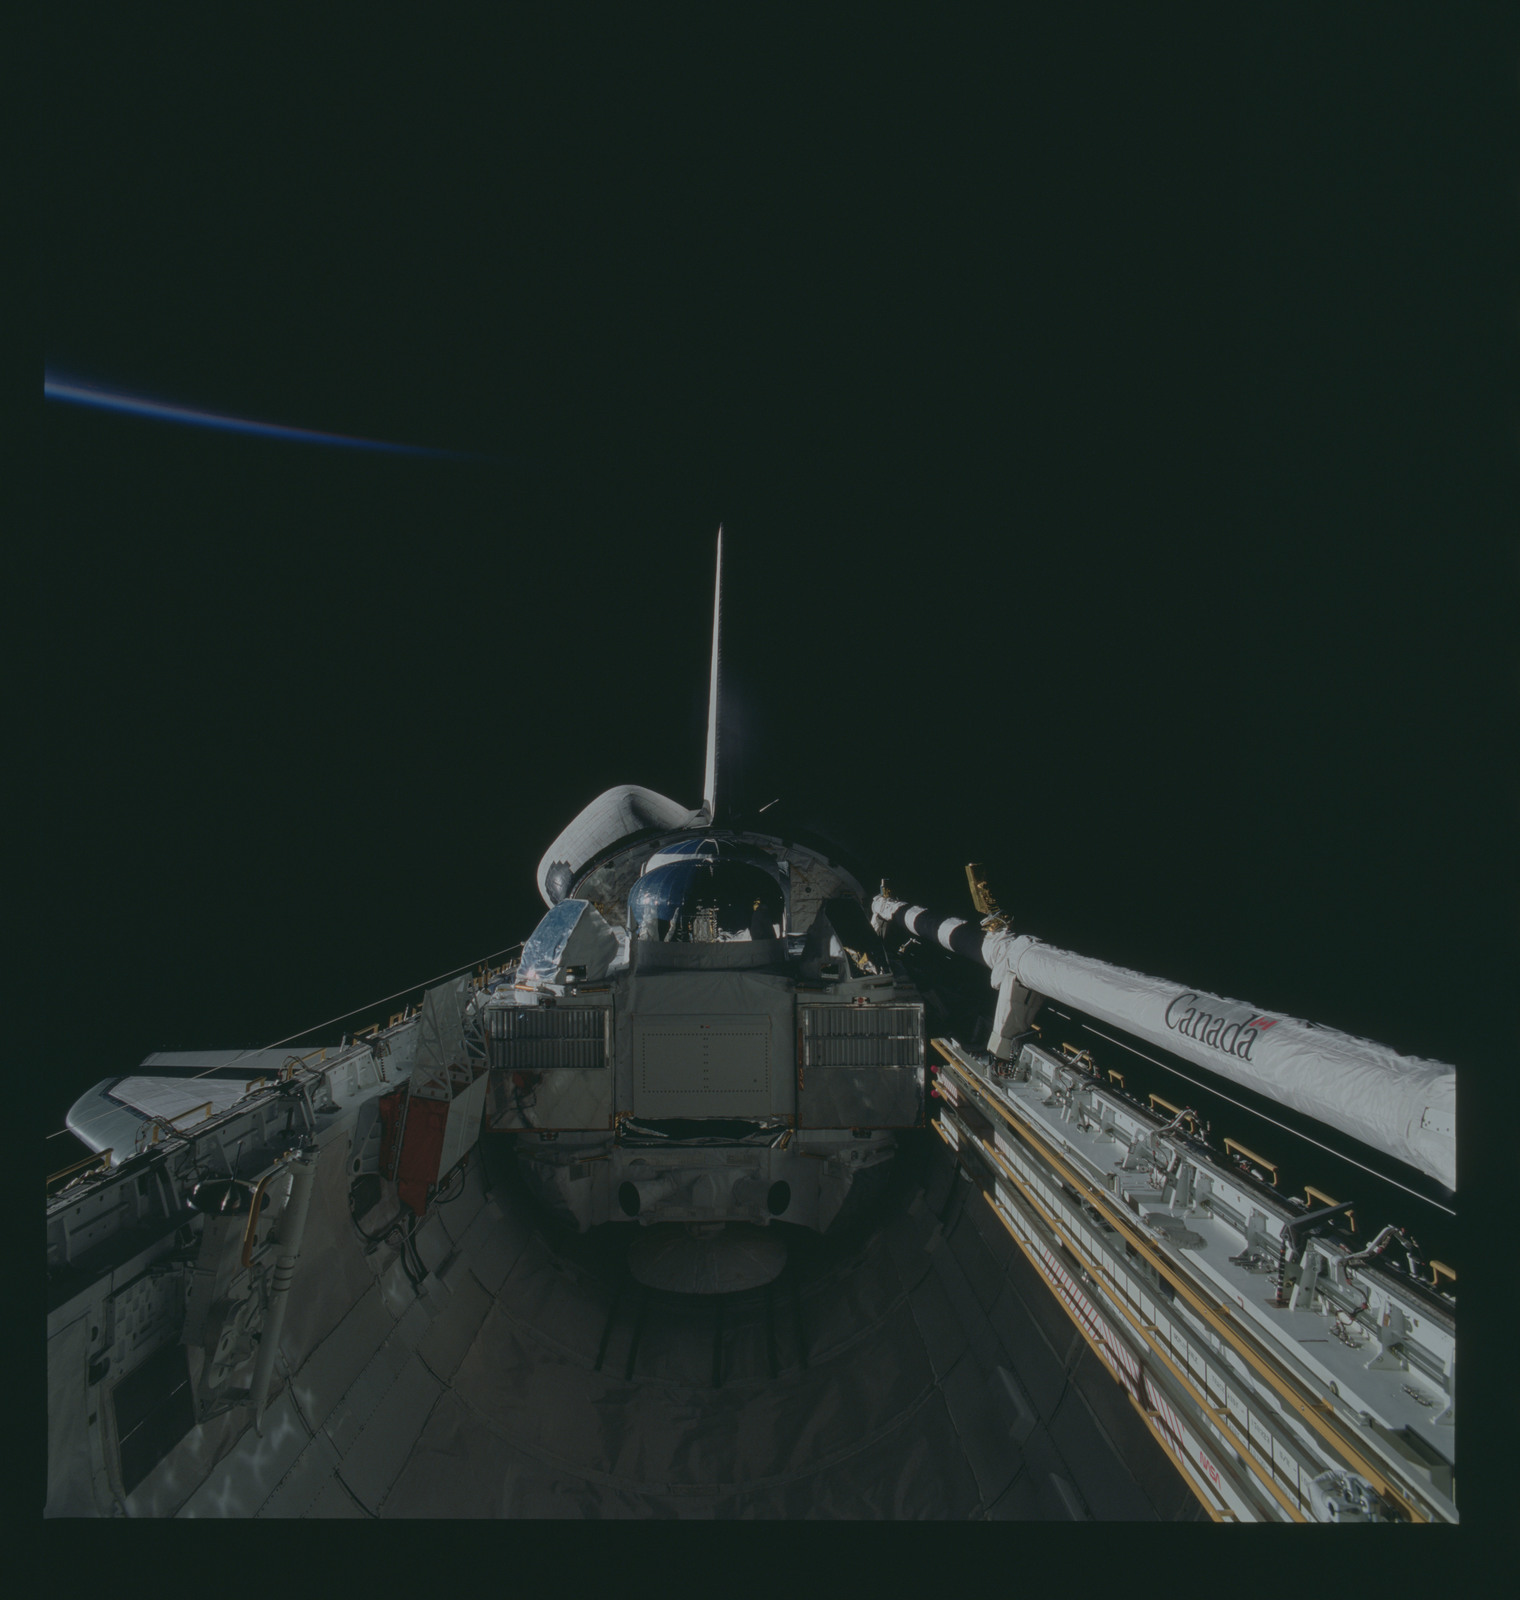 S37-94-031 - STS-037 - A view of the GRO in the payload bay of OV-104 during the STS-37 mission